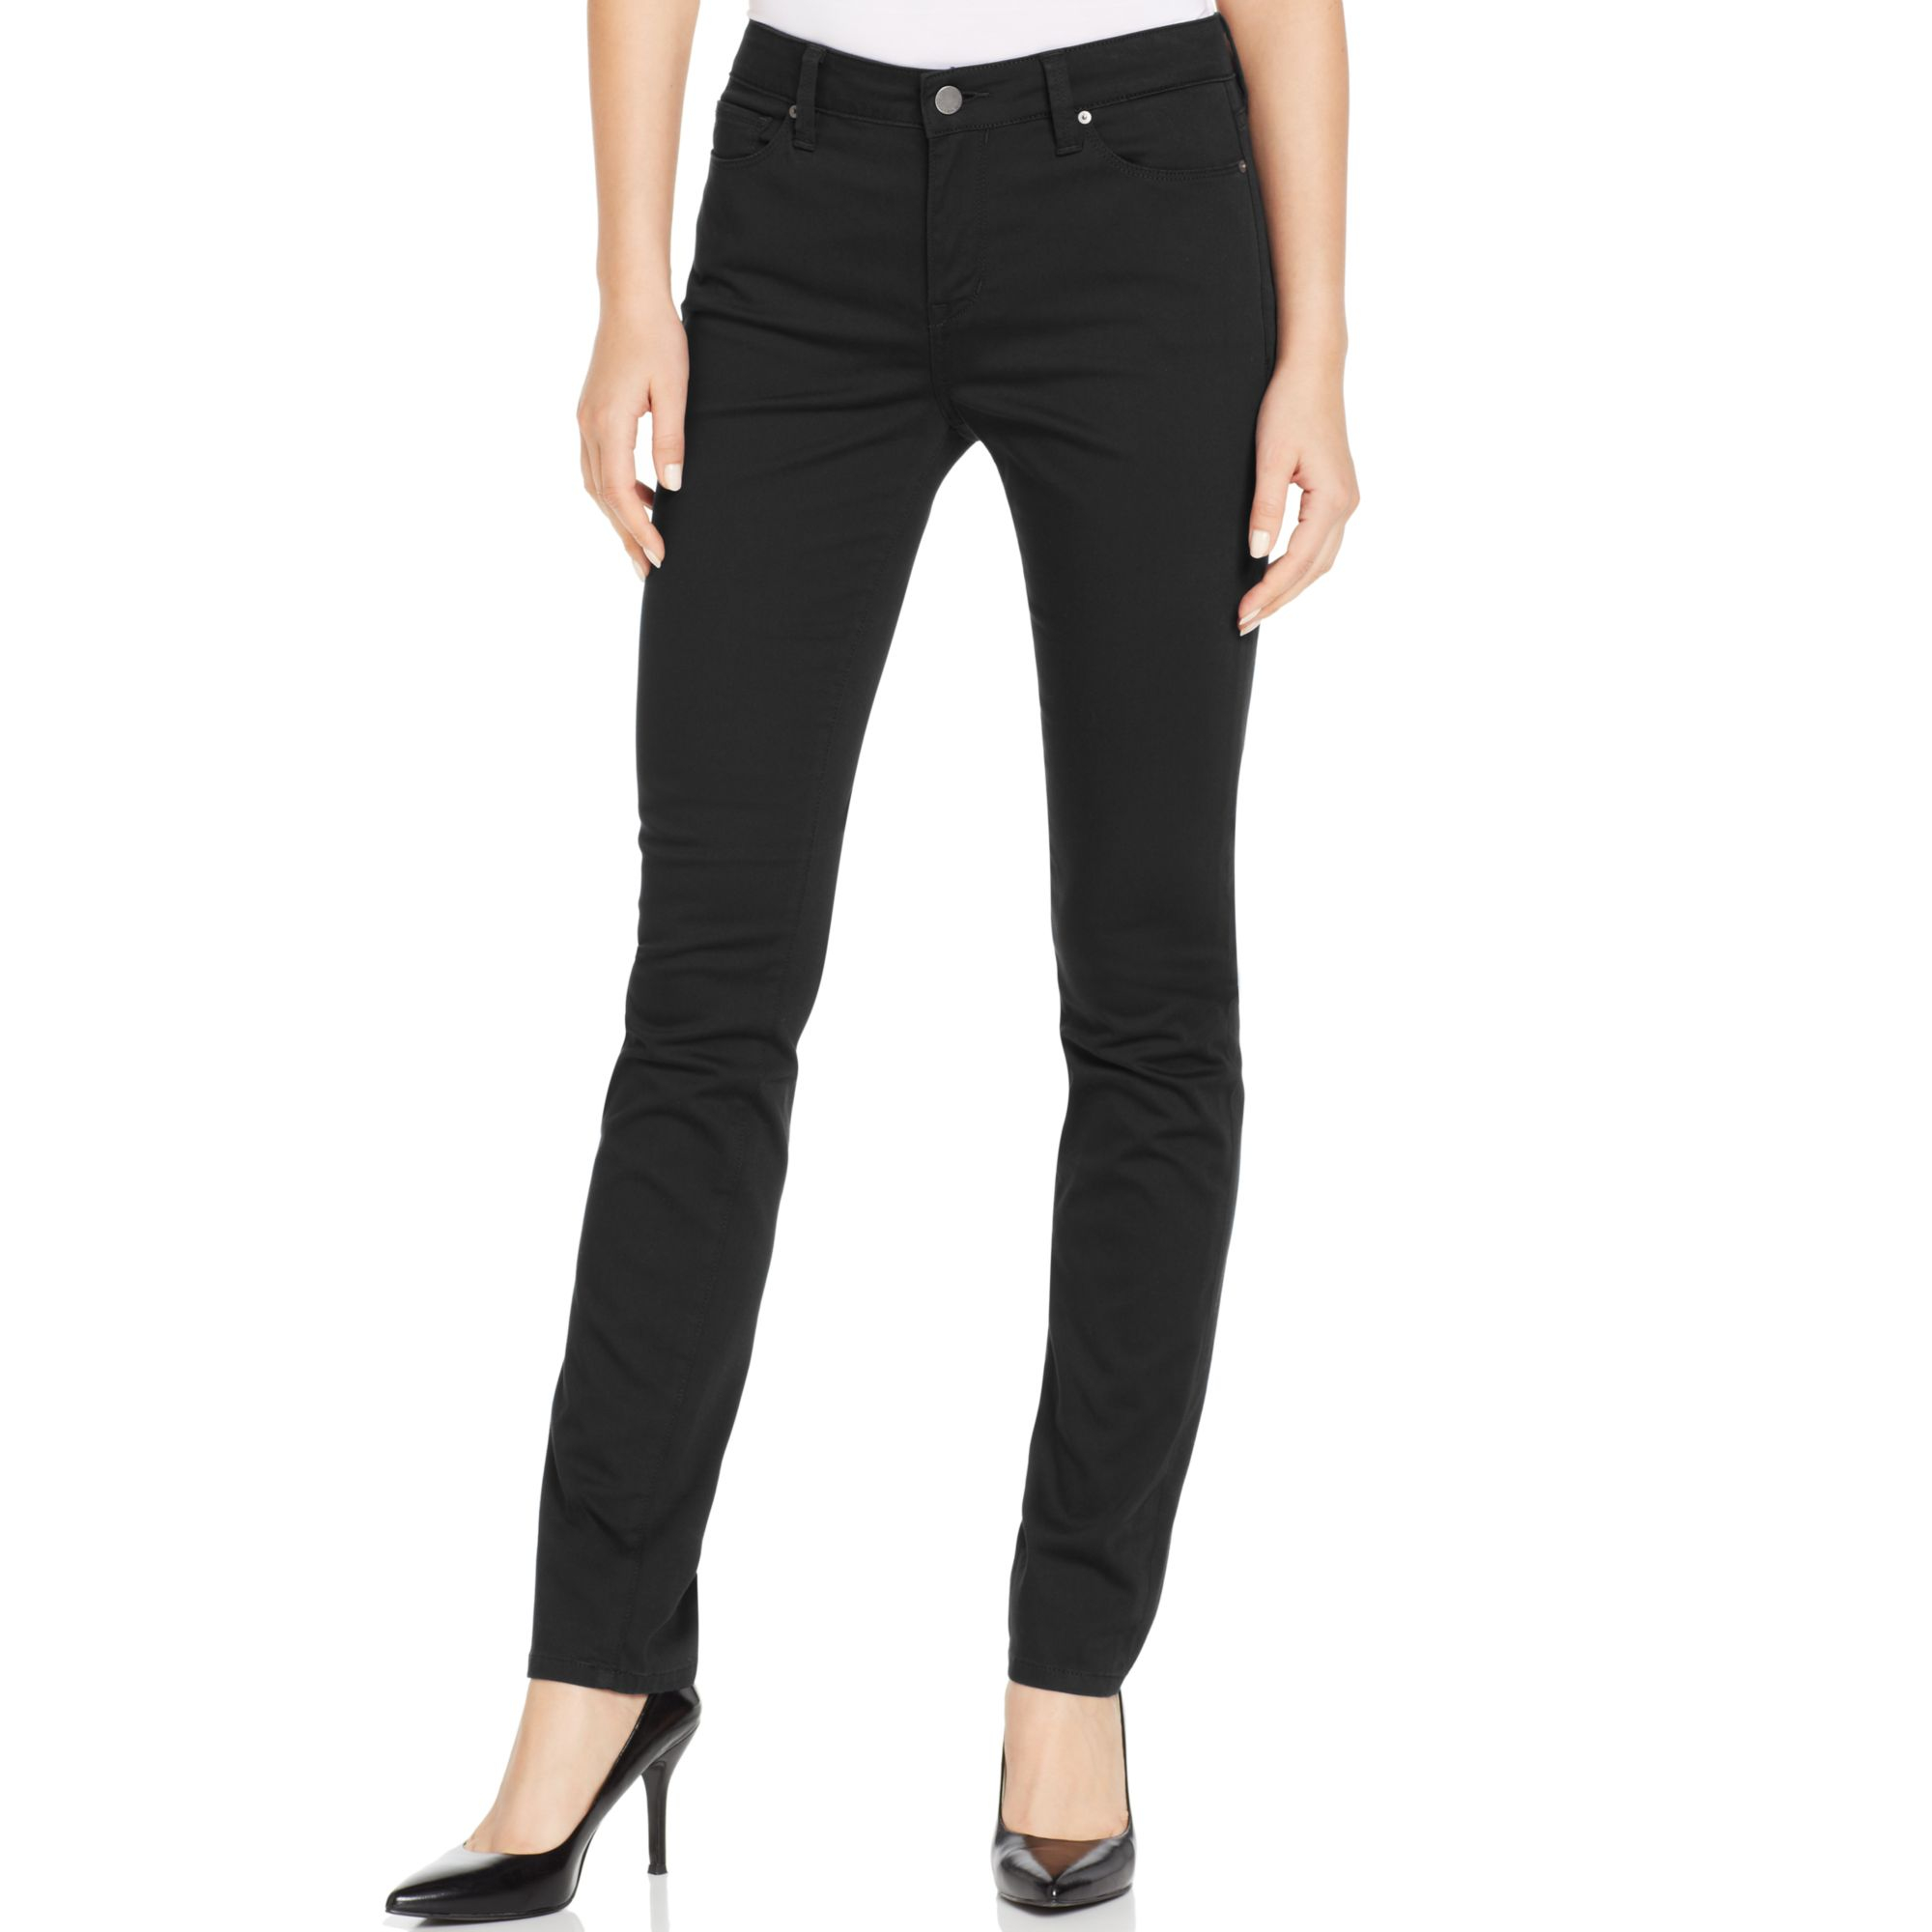 Calvin Klein Pants Womens With Model Style – playzoa.com